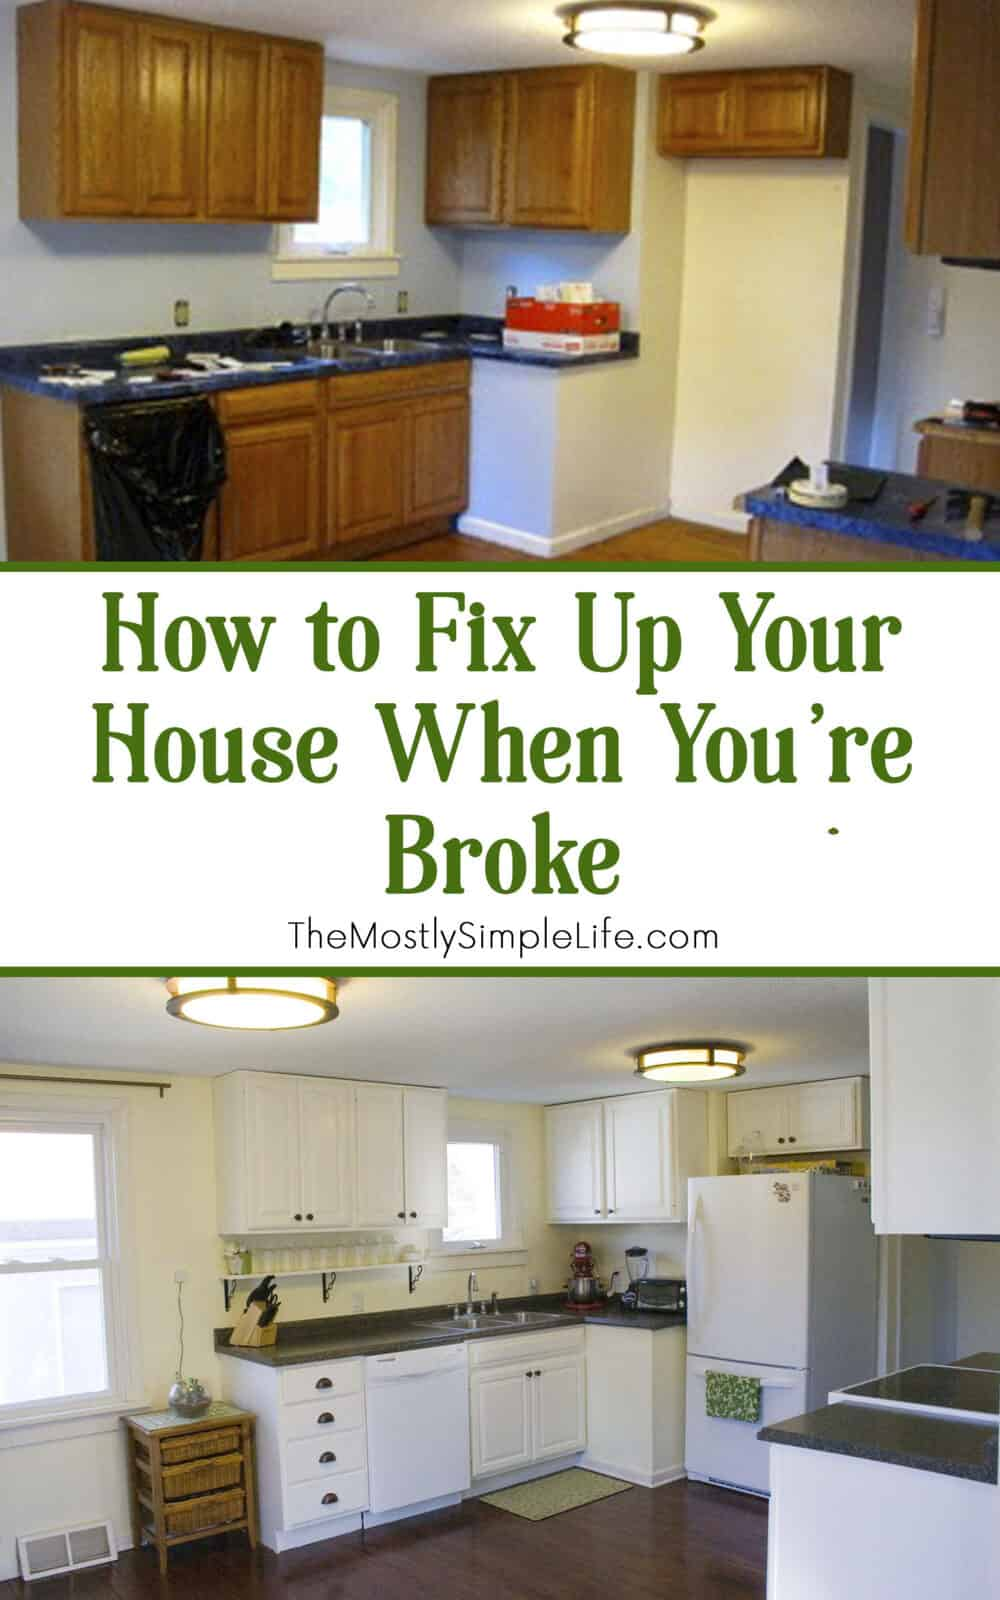 Our first house was a fixer upper. We did major DIY projects to fix it up. We were super broke, so we did it on a tight budget.... Love these ideas! Great kitchen remodel/transformation! #DIY #fixerupper #houseprojects #remodel #home #house #homeimprovement